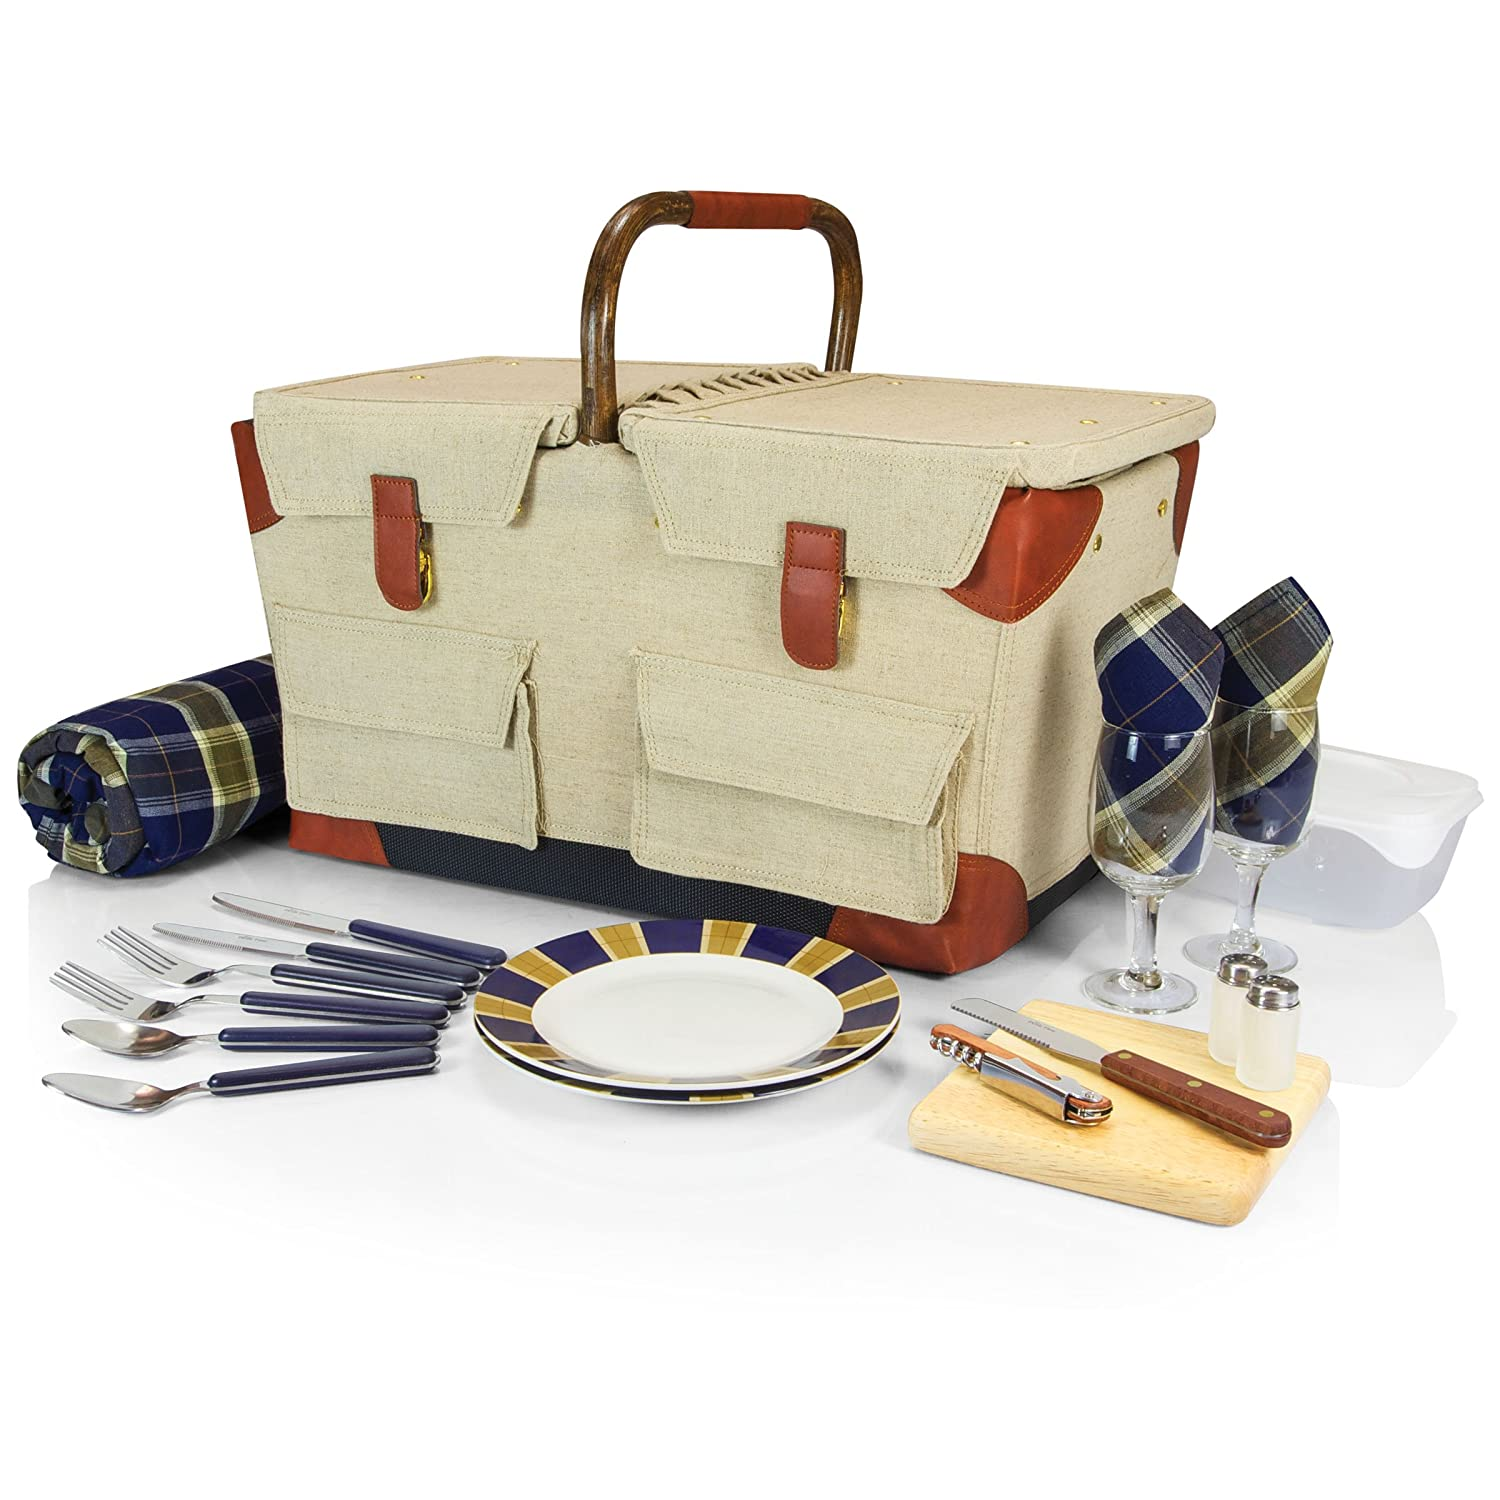 Picnic Time 'Pioneer' Original Design Picnic Basket with Deluxe Service for Two, Tan/Navy